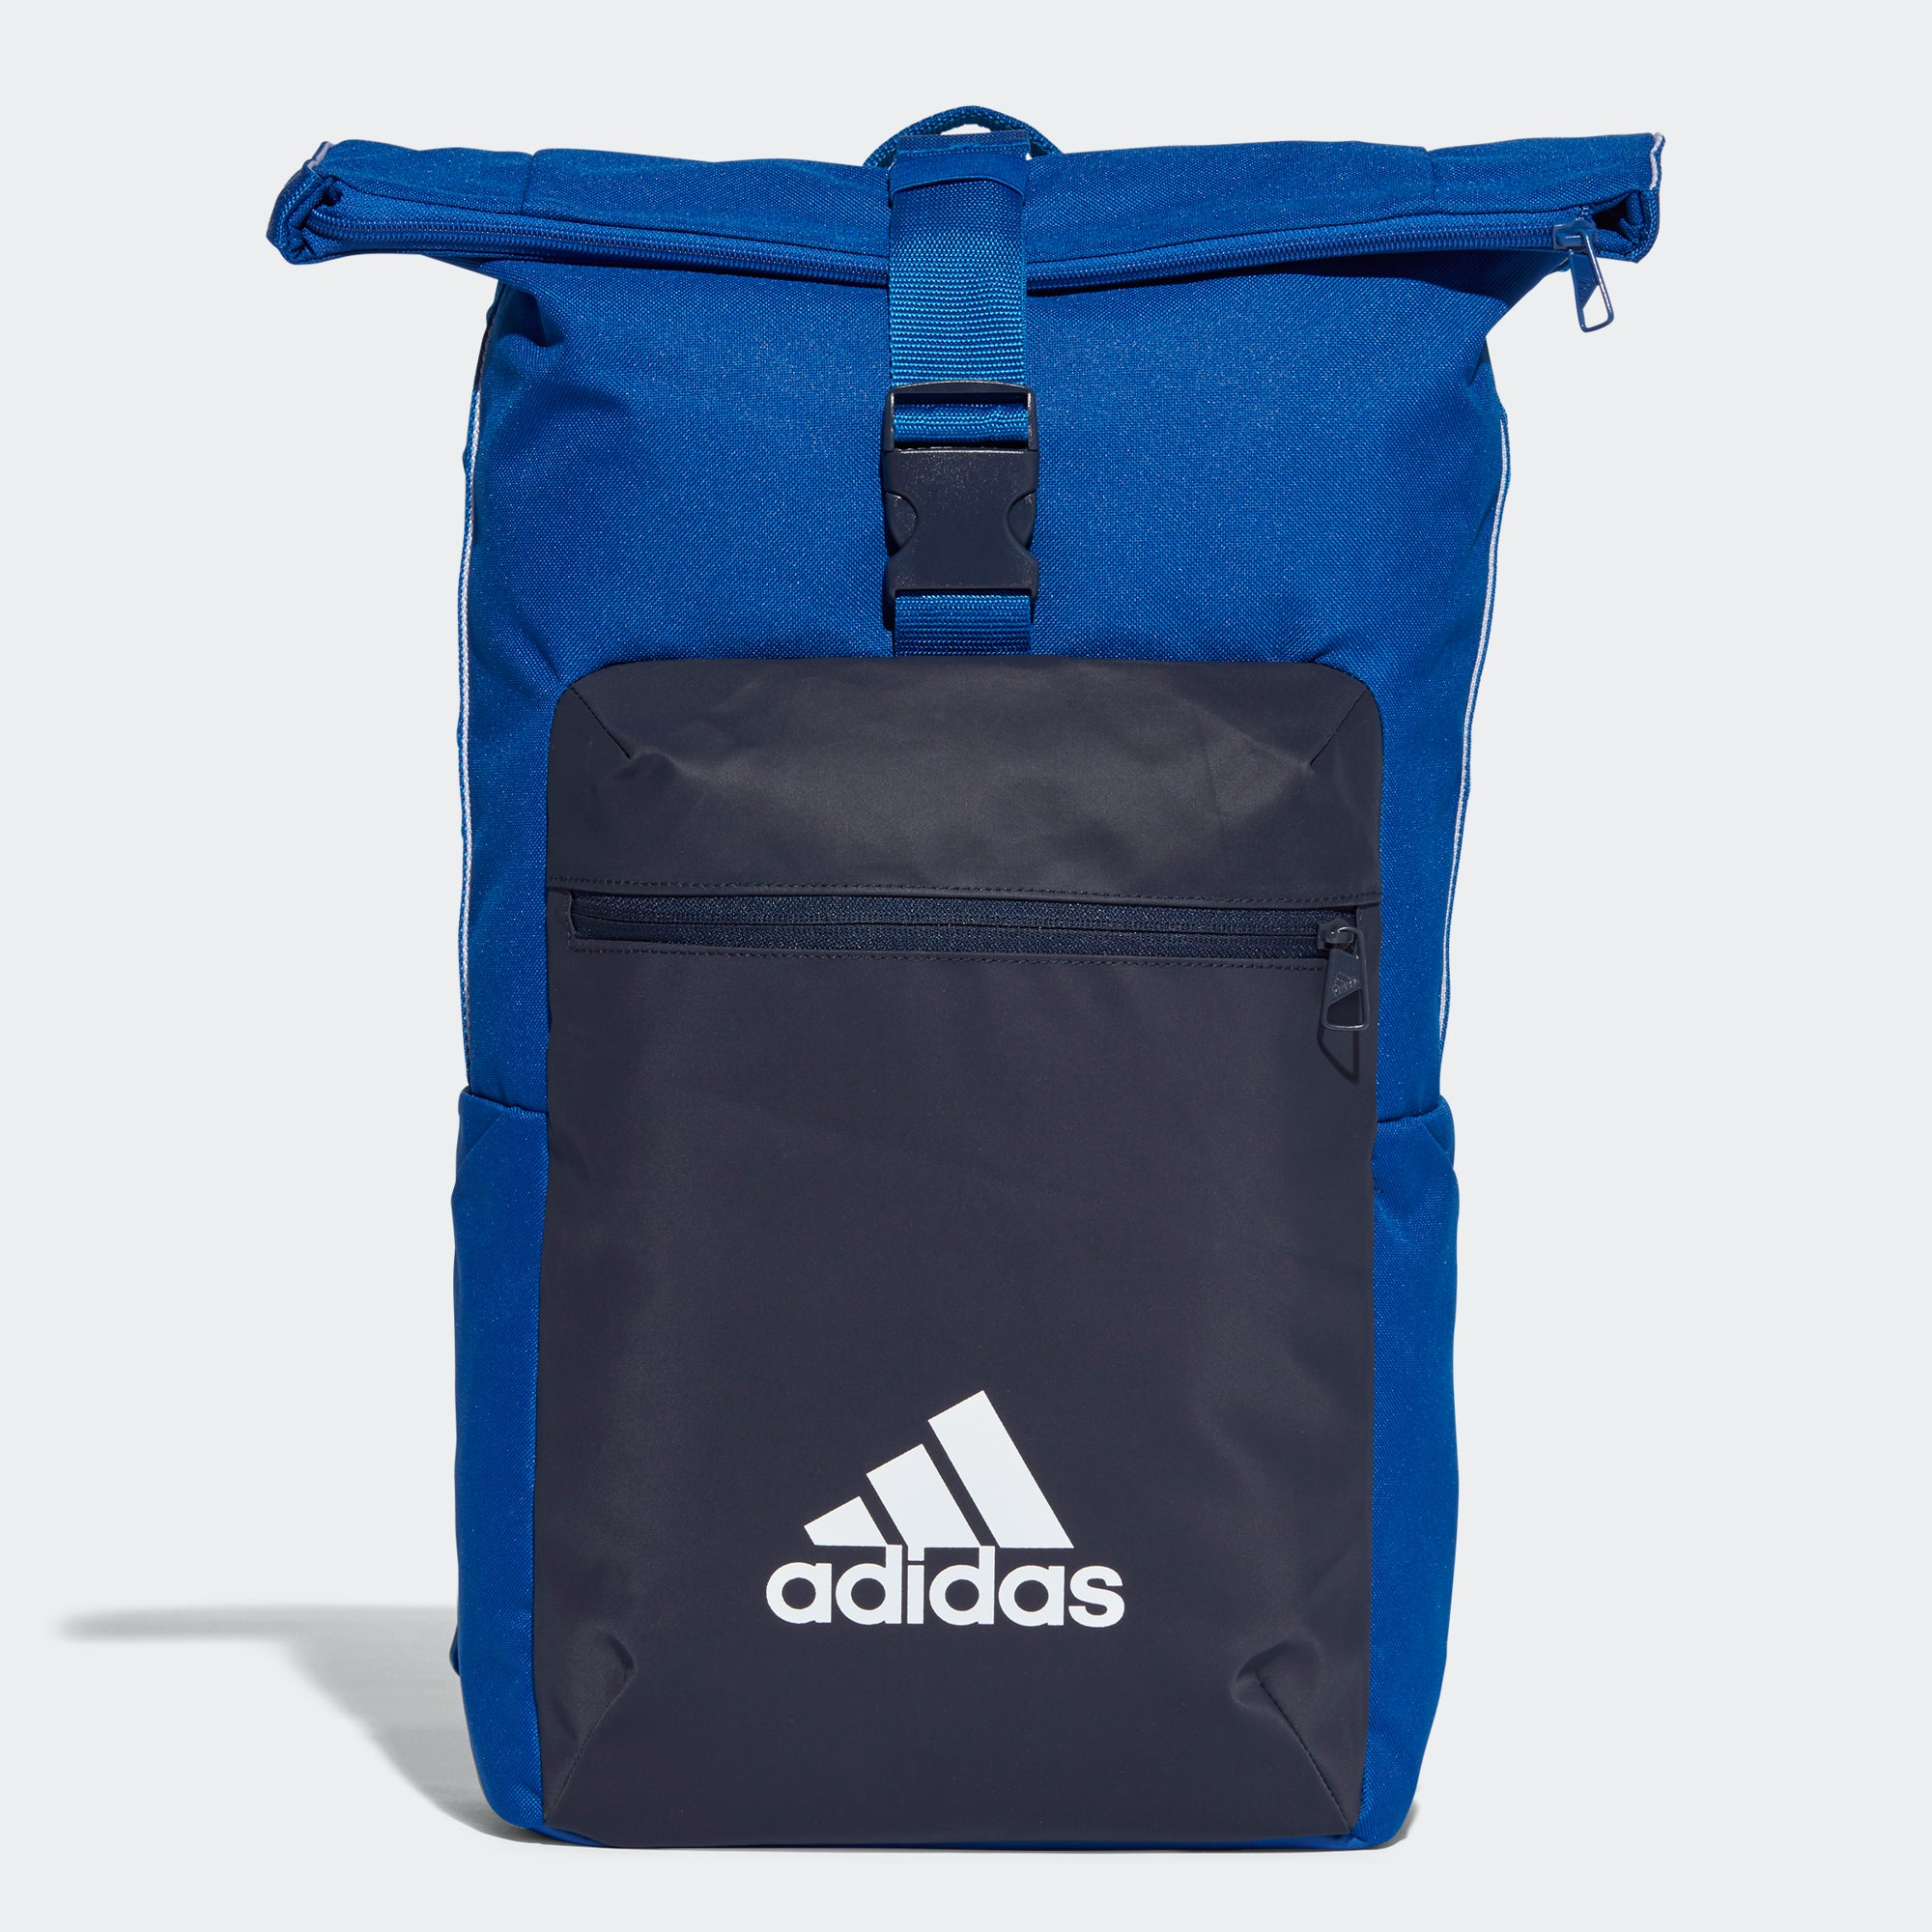 Buy adidas Athletics Core Backpack be0d81ff0c88c